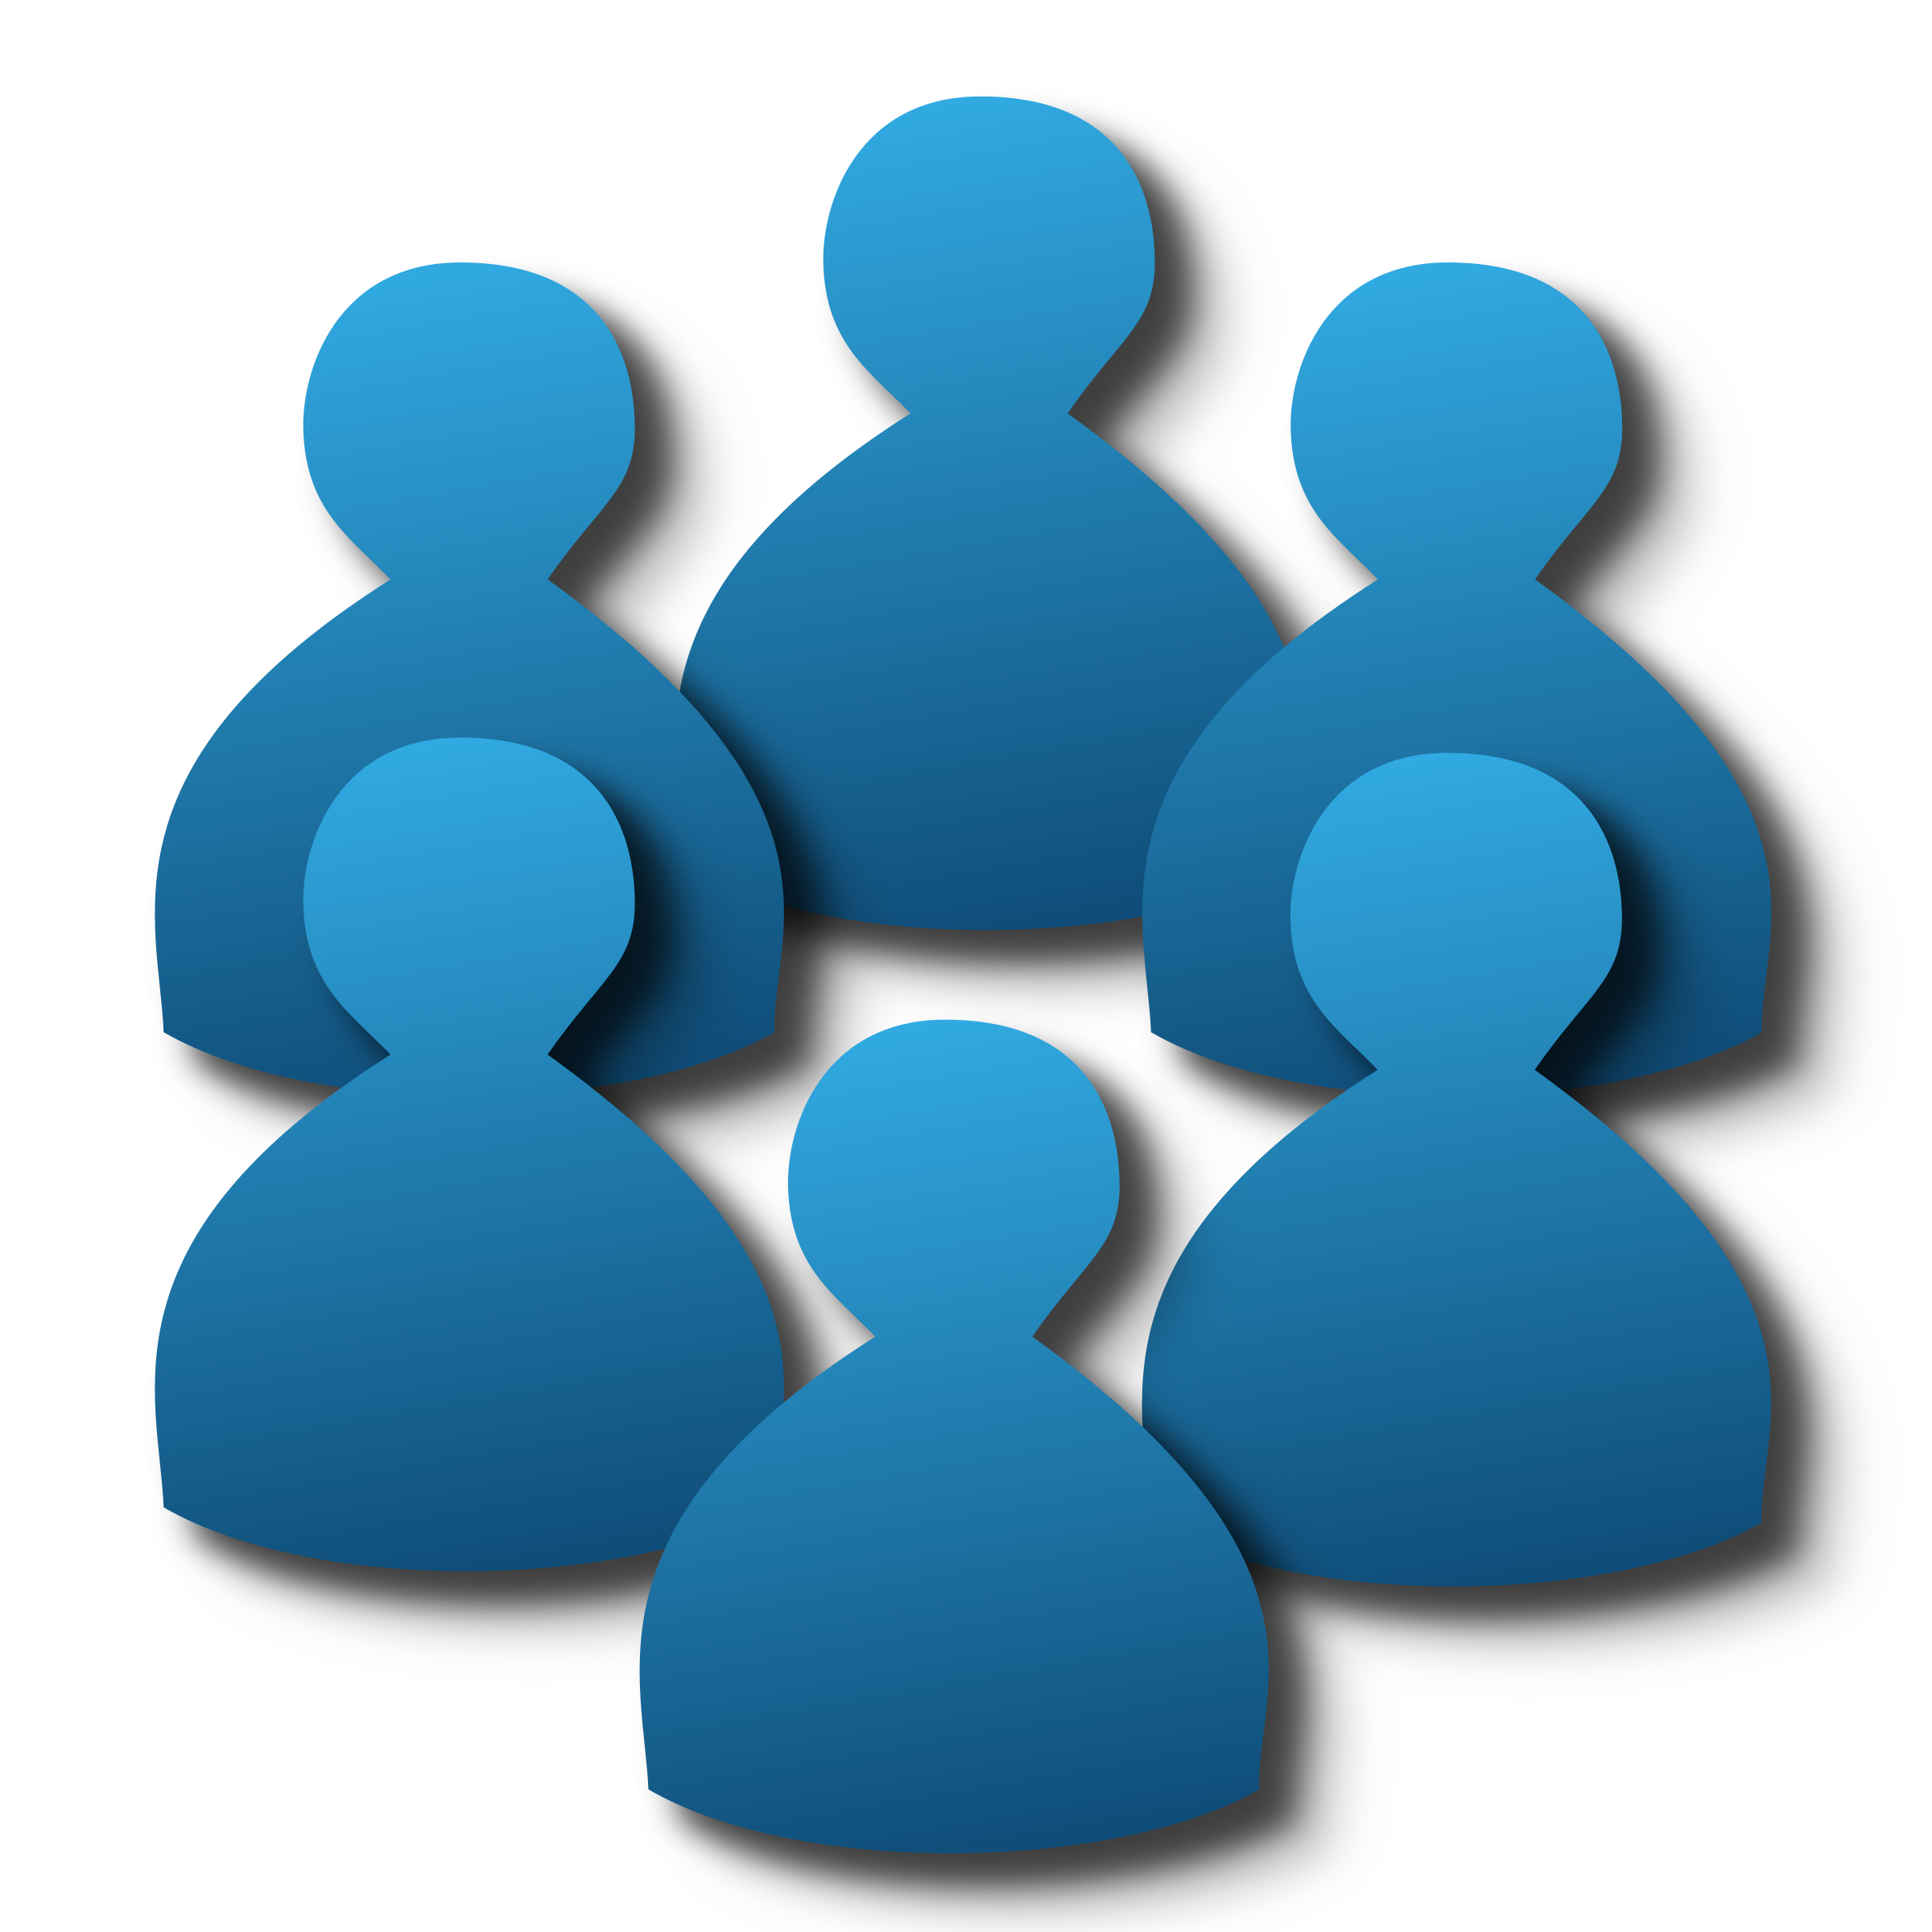 Collaboration clipart remote. Collaborating with other user